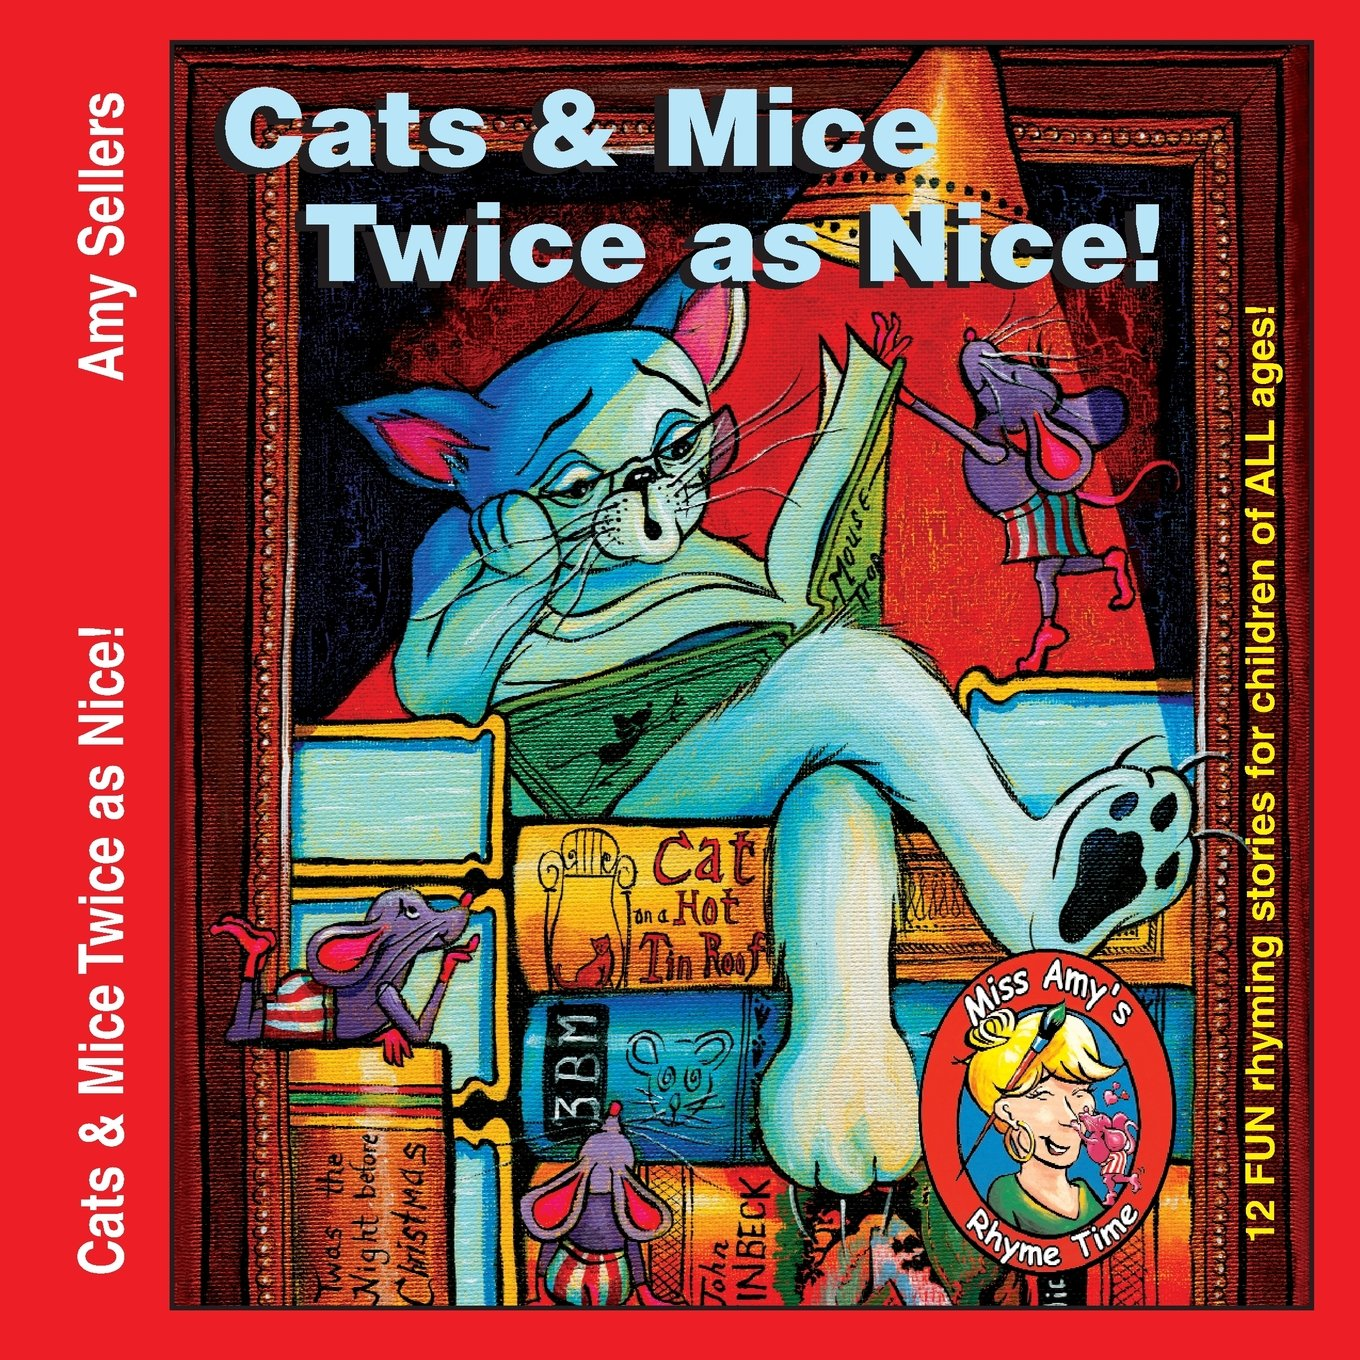 Book Online at Low Prices in India | Cats & Mice, Twice as Nice! Reviews &  Ratings - Amazon.in